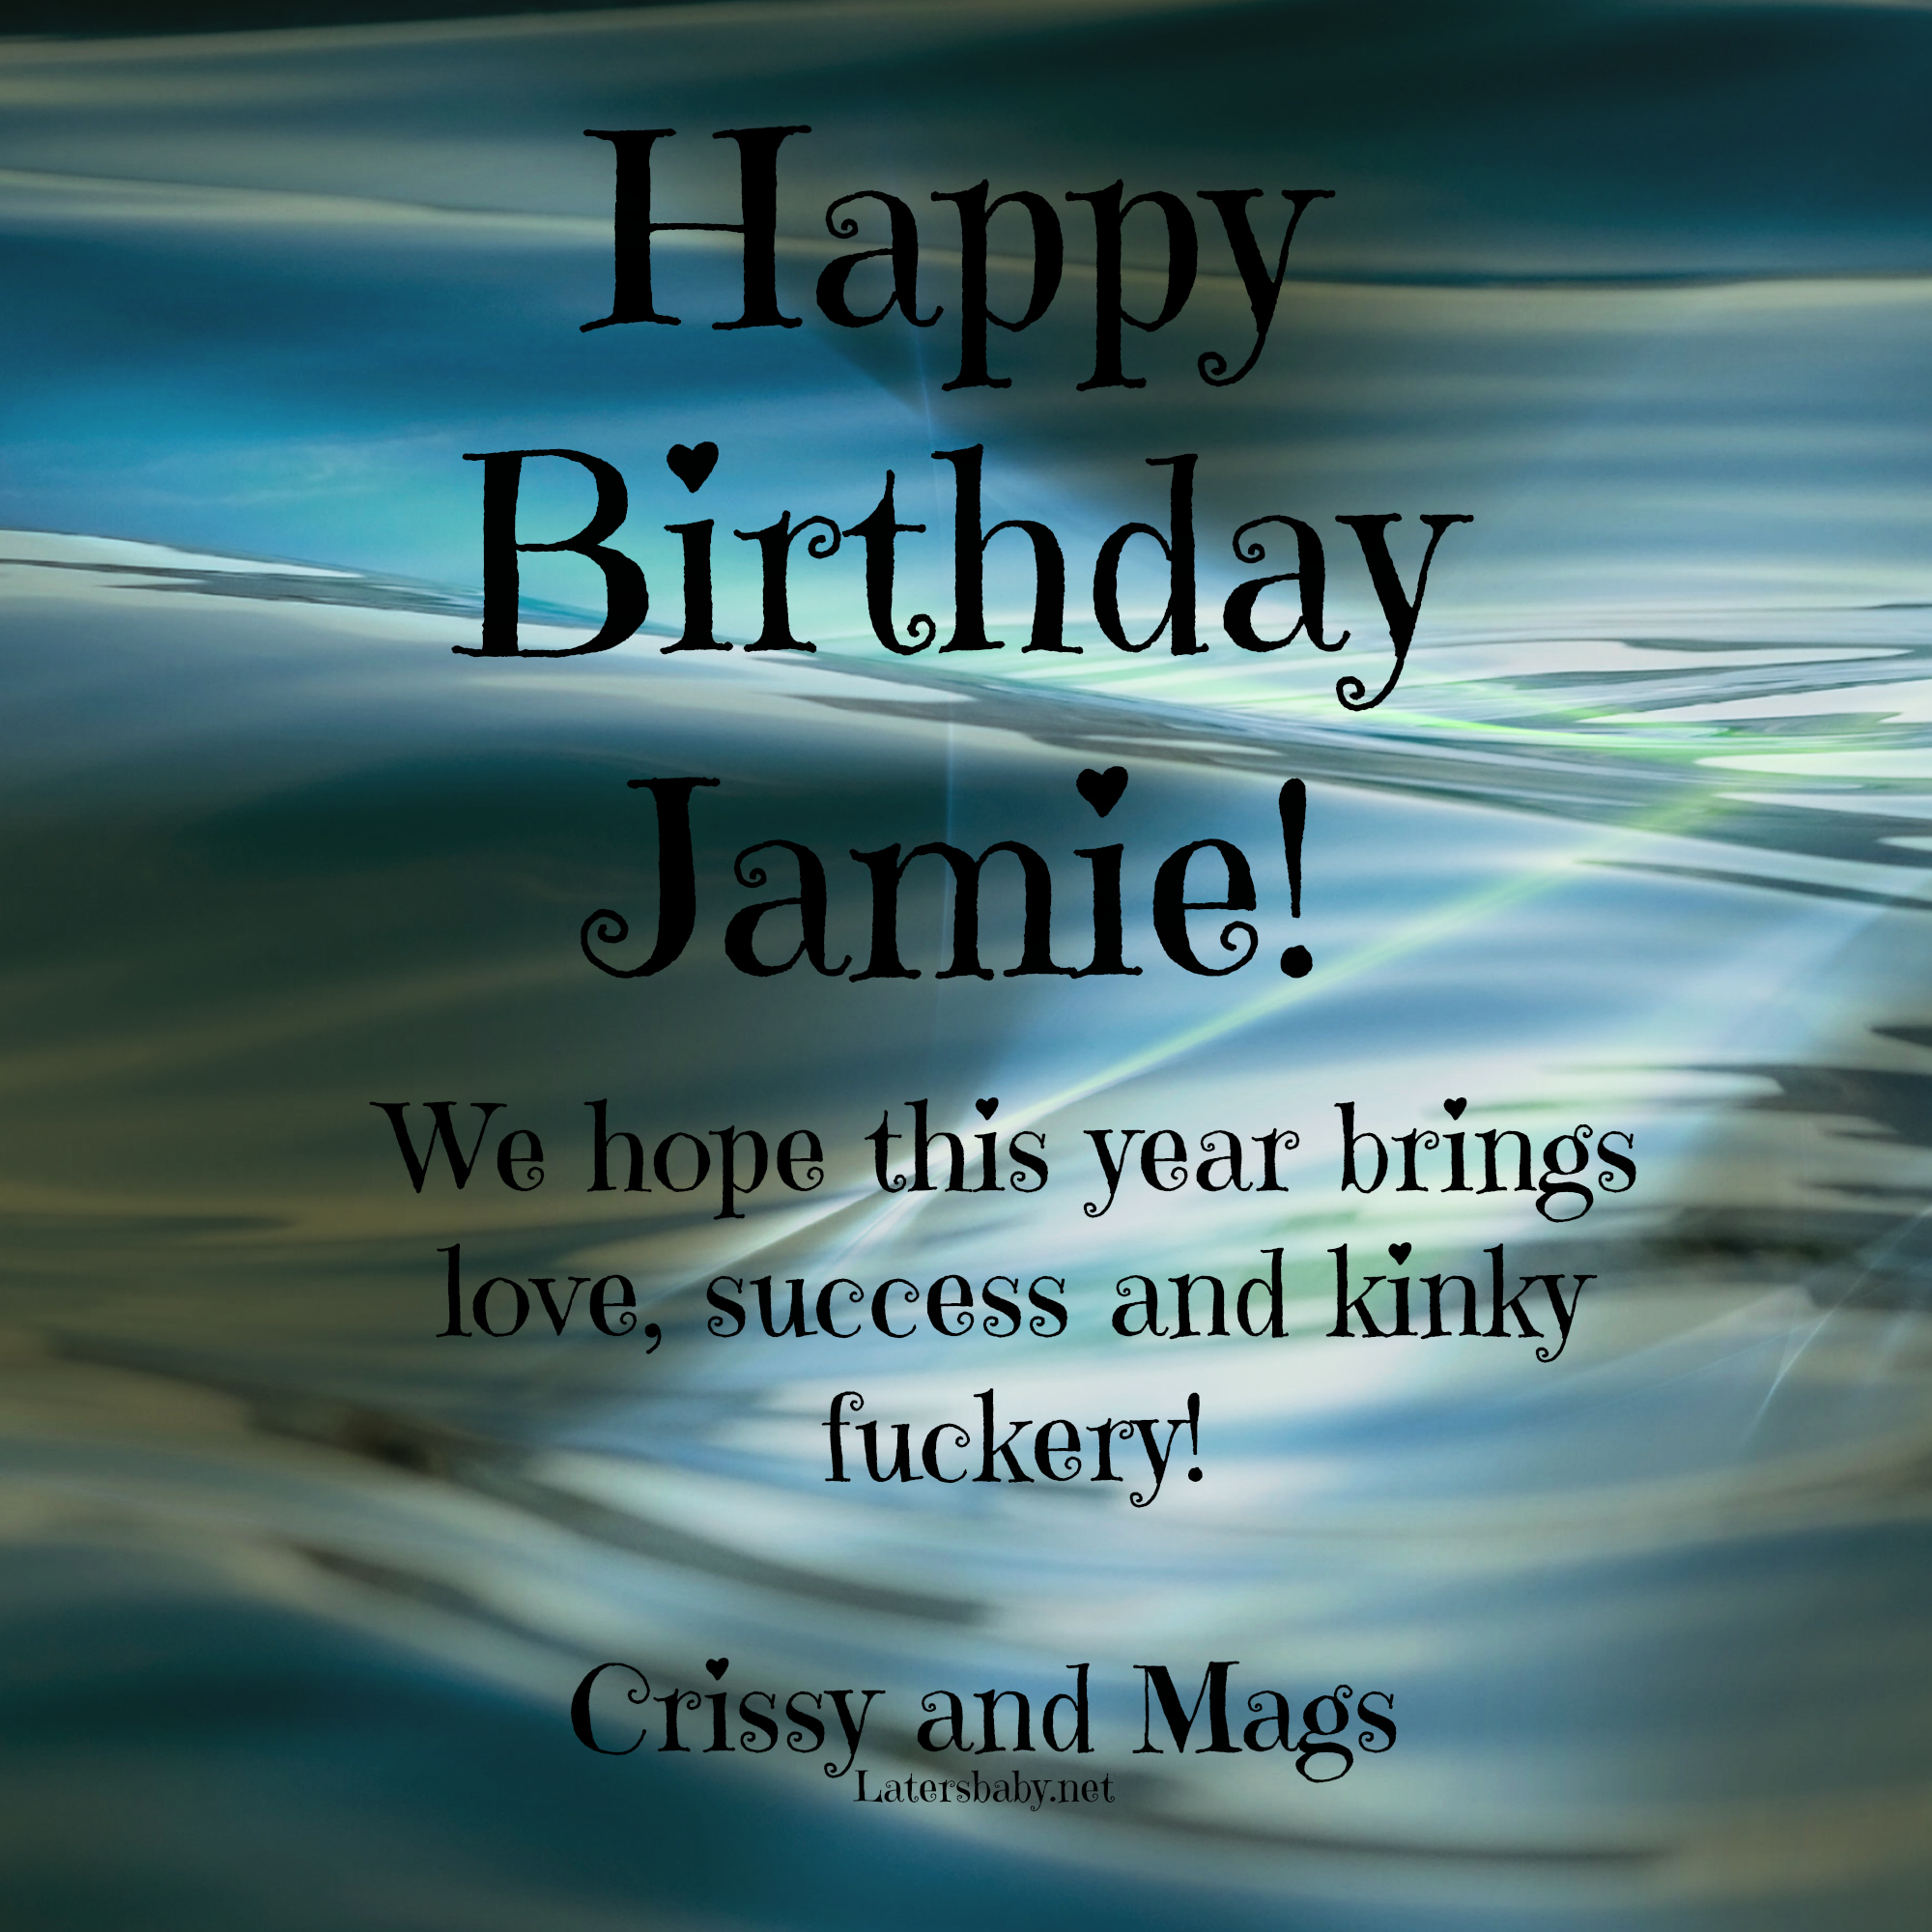 happy birthday jamie ; JamiesBirthdayLB3